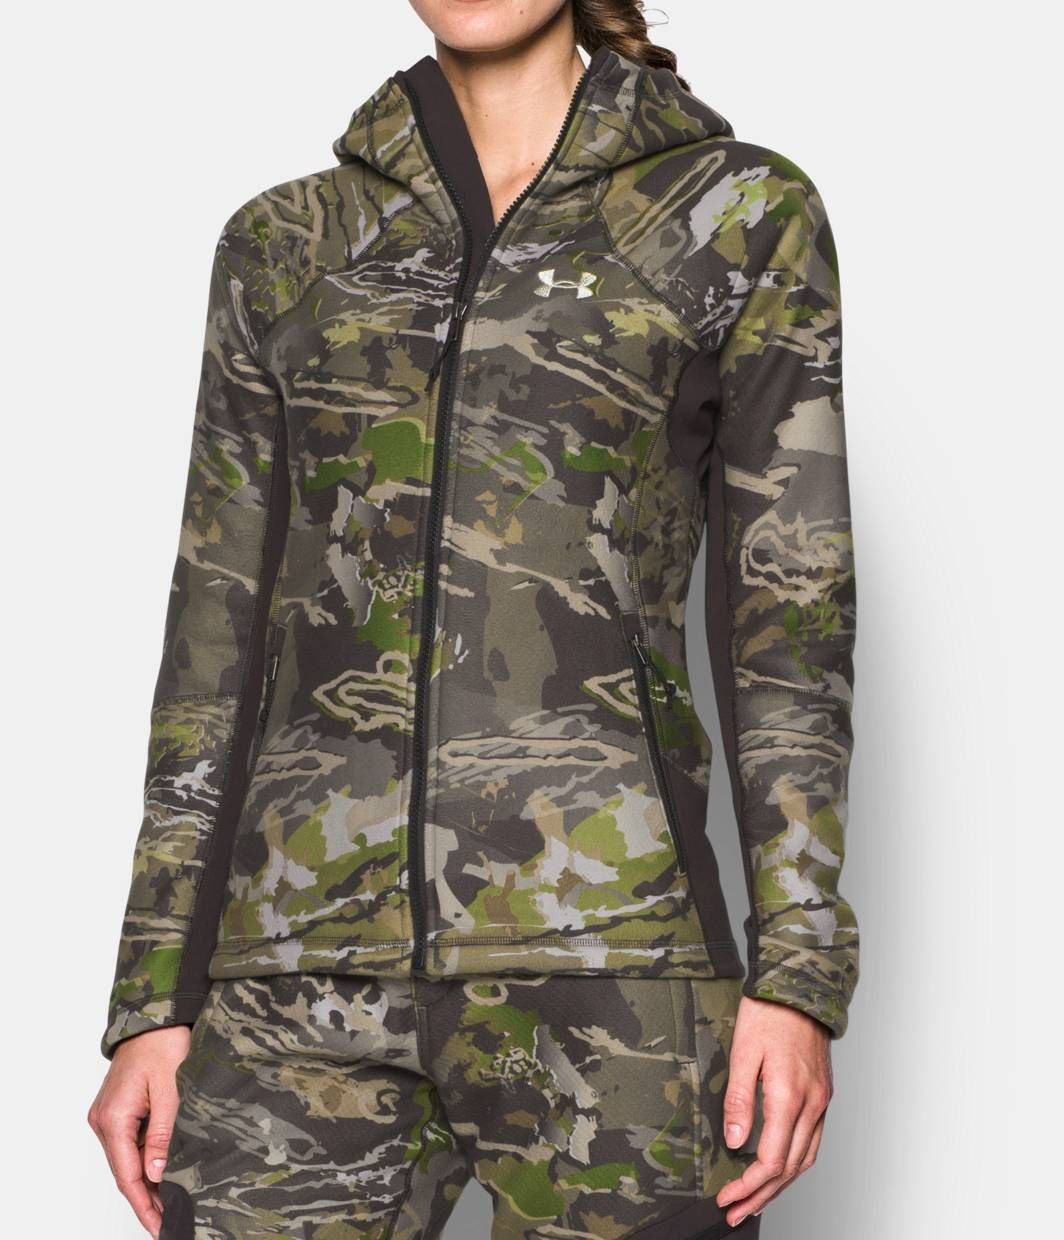 acf893873a Women's UA Mid Season Hoodie | Hunting | Under armour, Womens ...